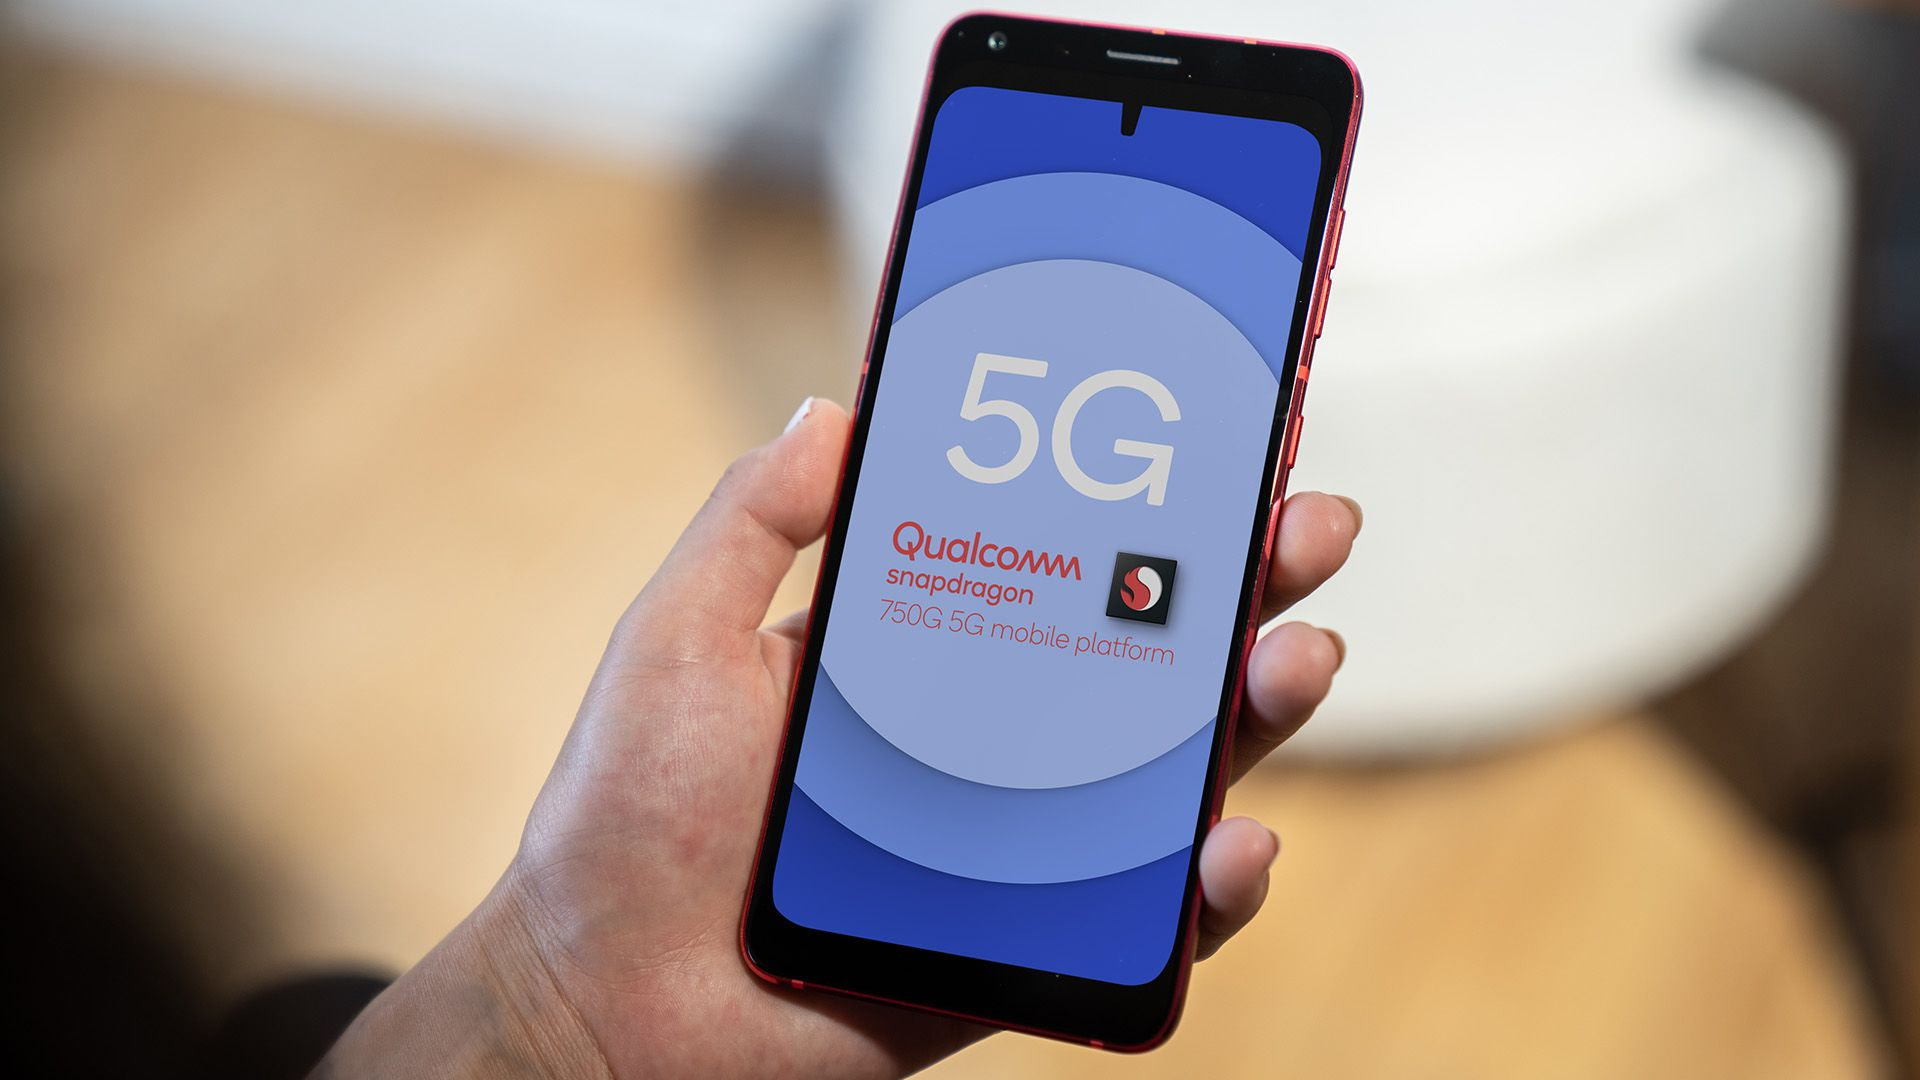 A smartphone running a Qualcomm 5G Snapdragon chipset